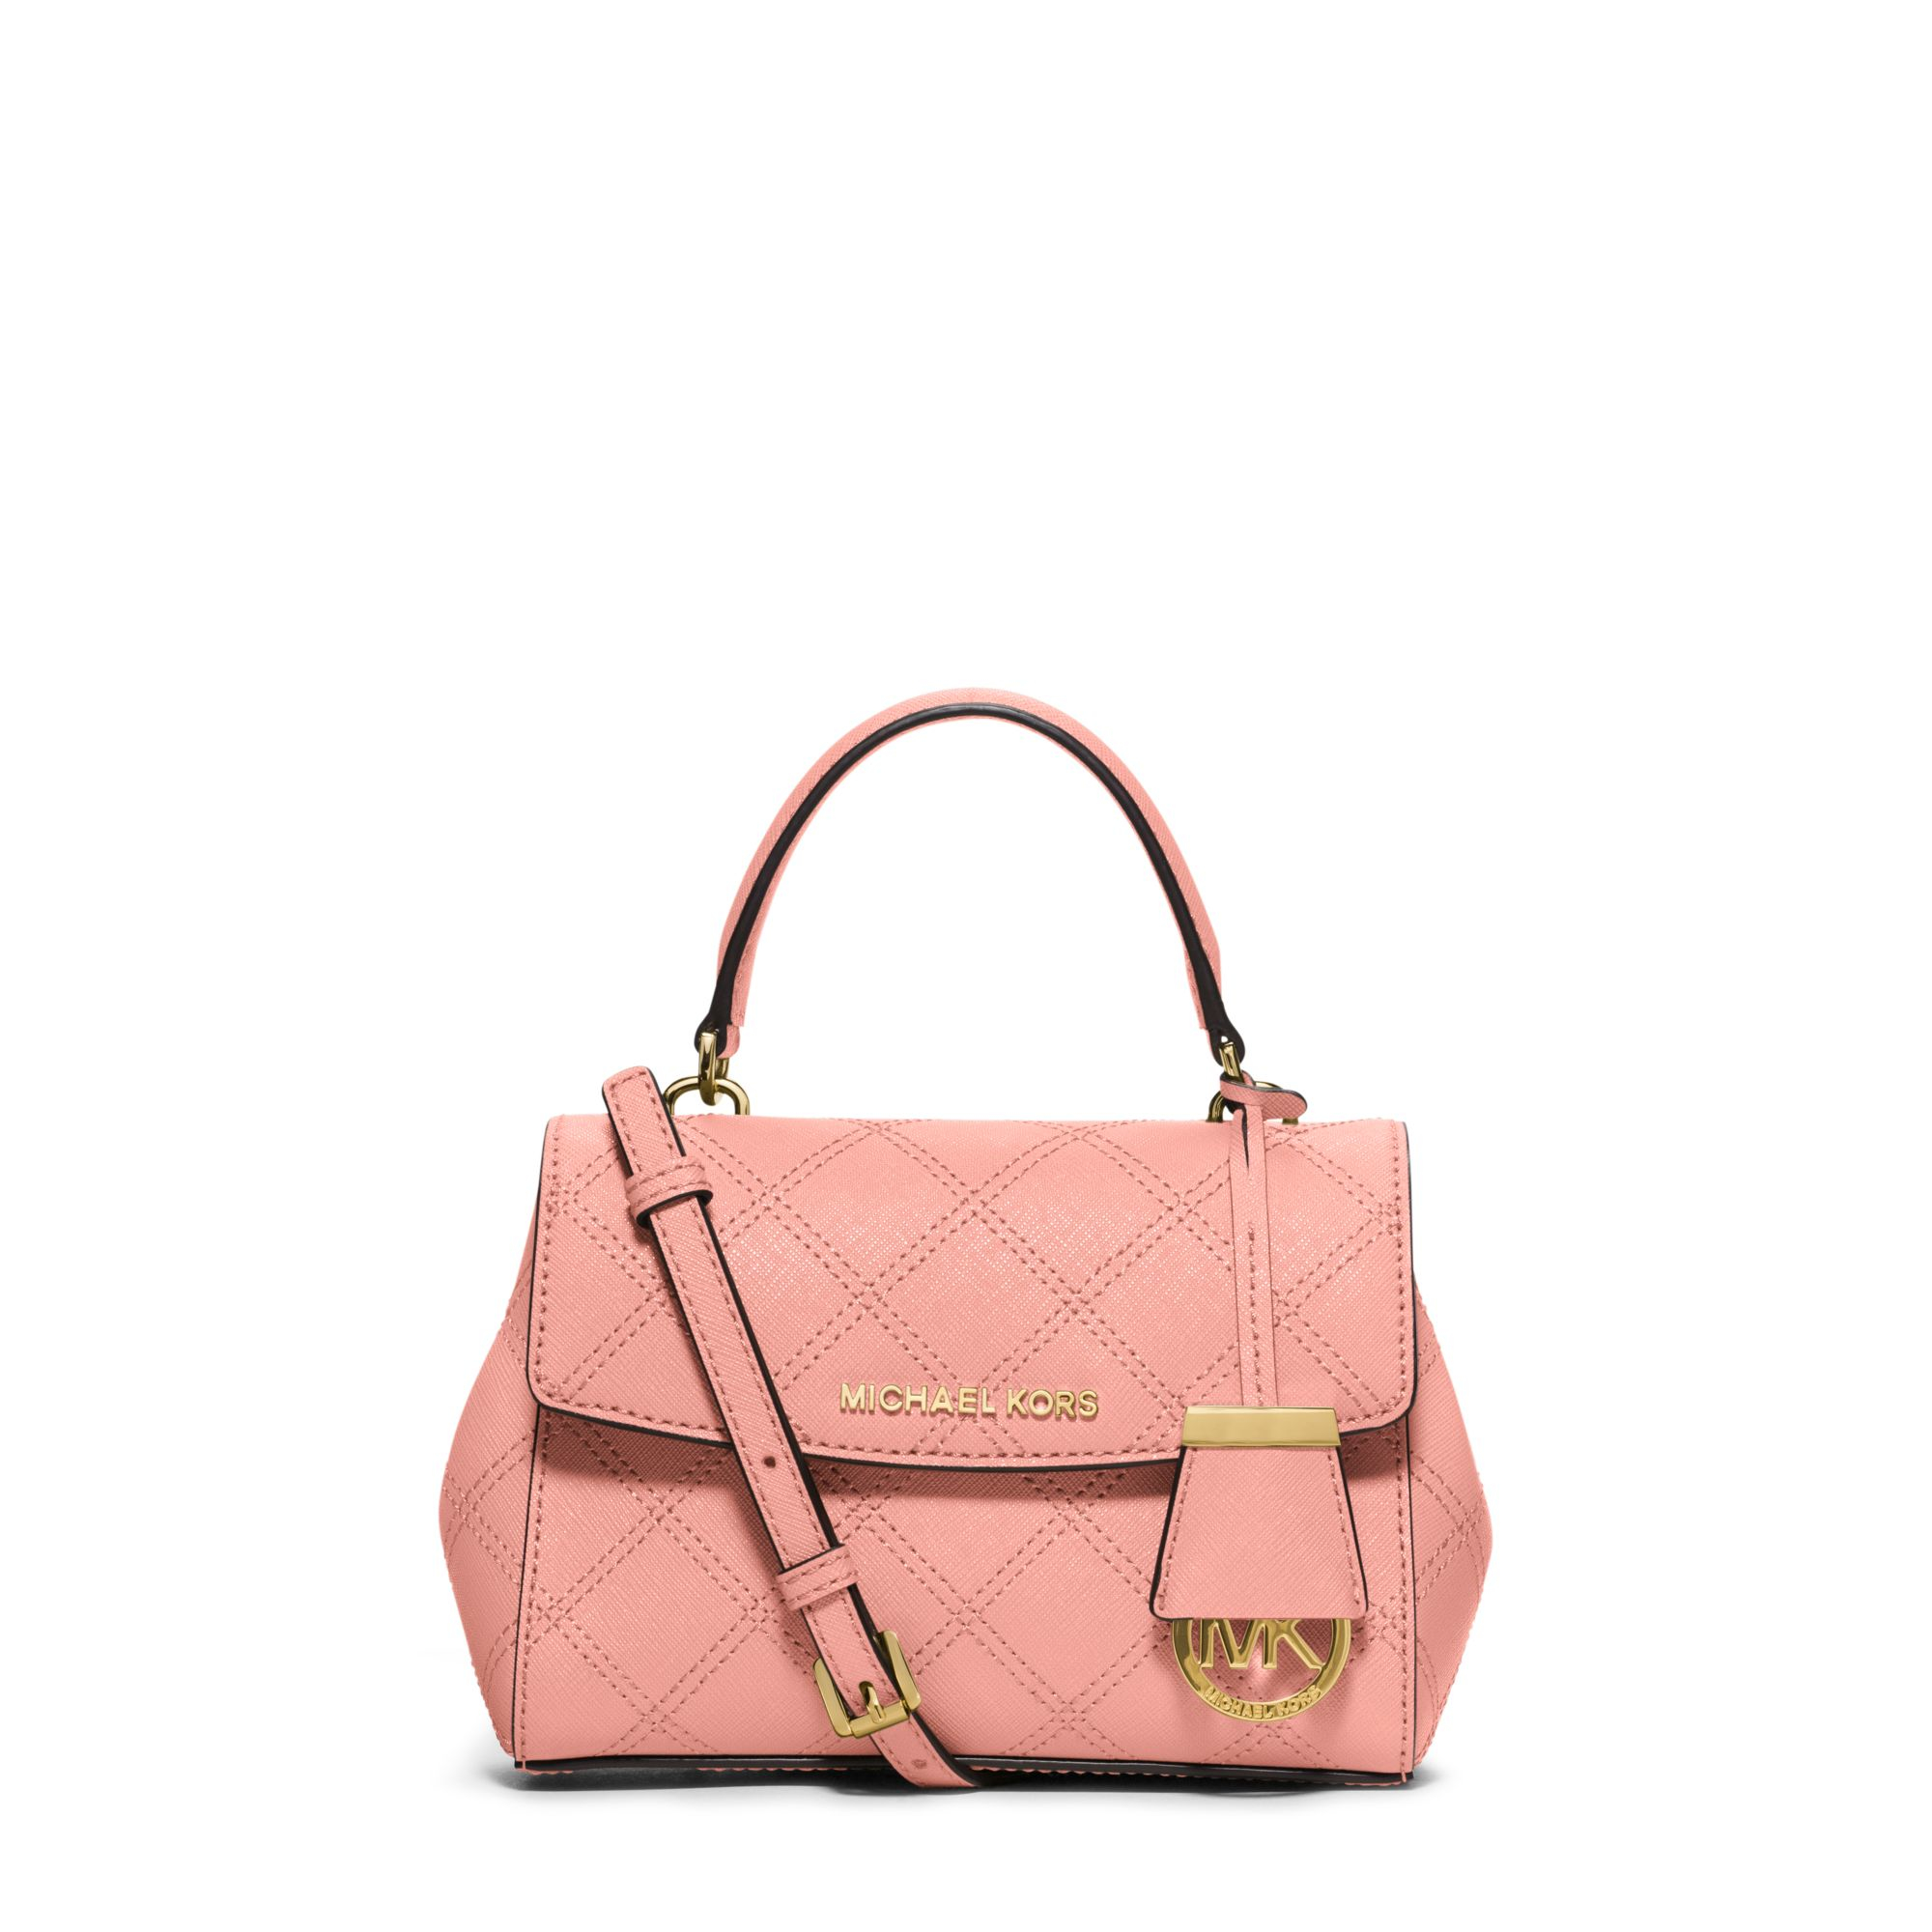 a2348fbd3078 Michael Kors Ava Extra-small Saffiano Leather Crossbody in Pink - Lyst